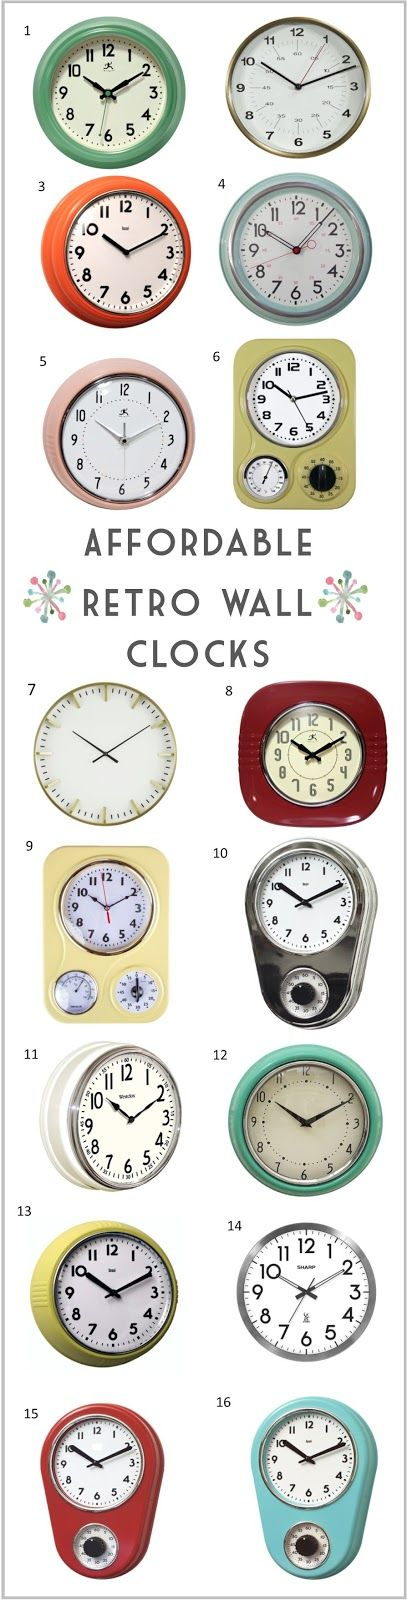 Affordable Mid Century Modern Clocks Inspiration  Moodboard Cool Small Wall Clock For Bathroom Decorating Inspiration